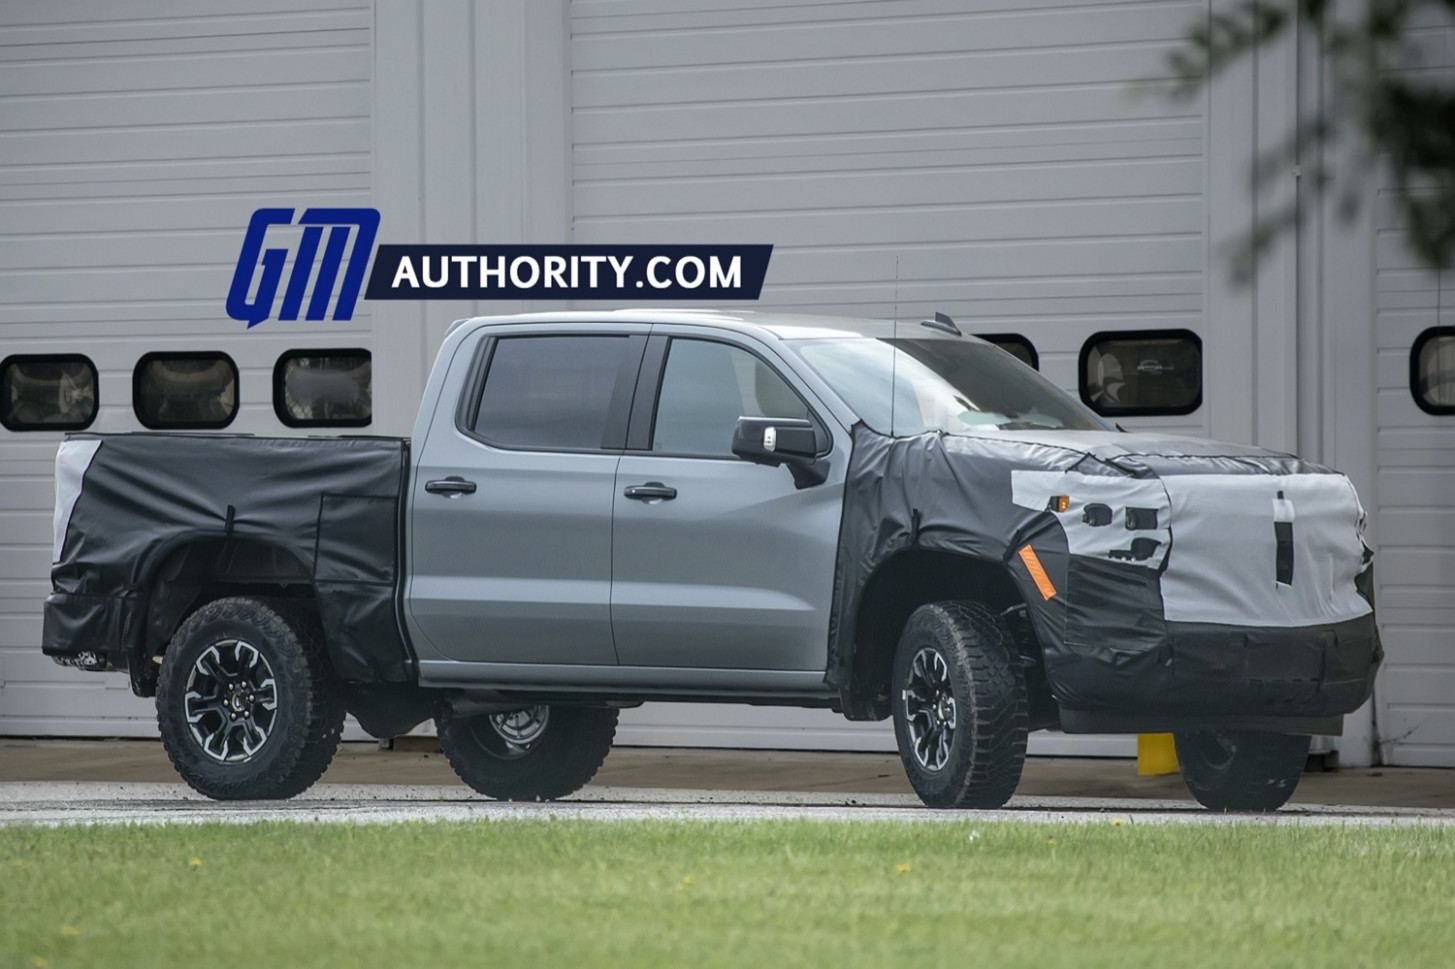 Exterior and Interior 2022 Chevy 2500Hd Duramax